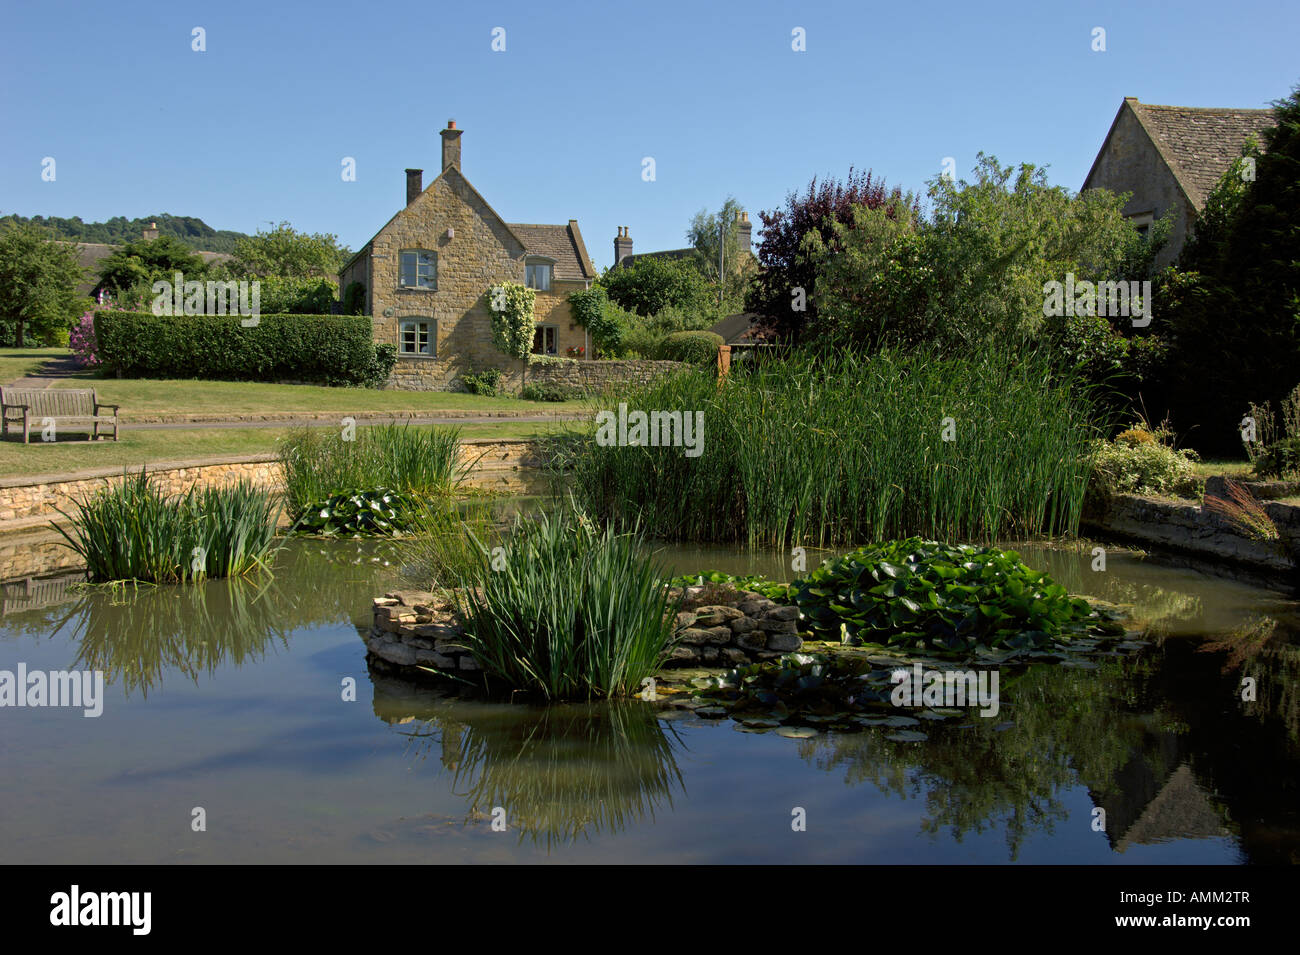 Willersey Village green Gloucestershire England July 2006 Stock Photo